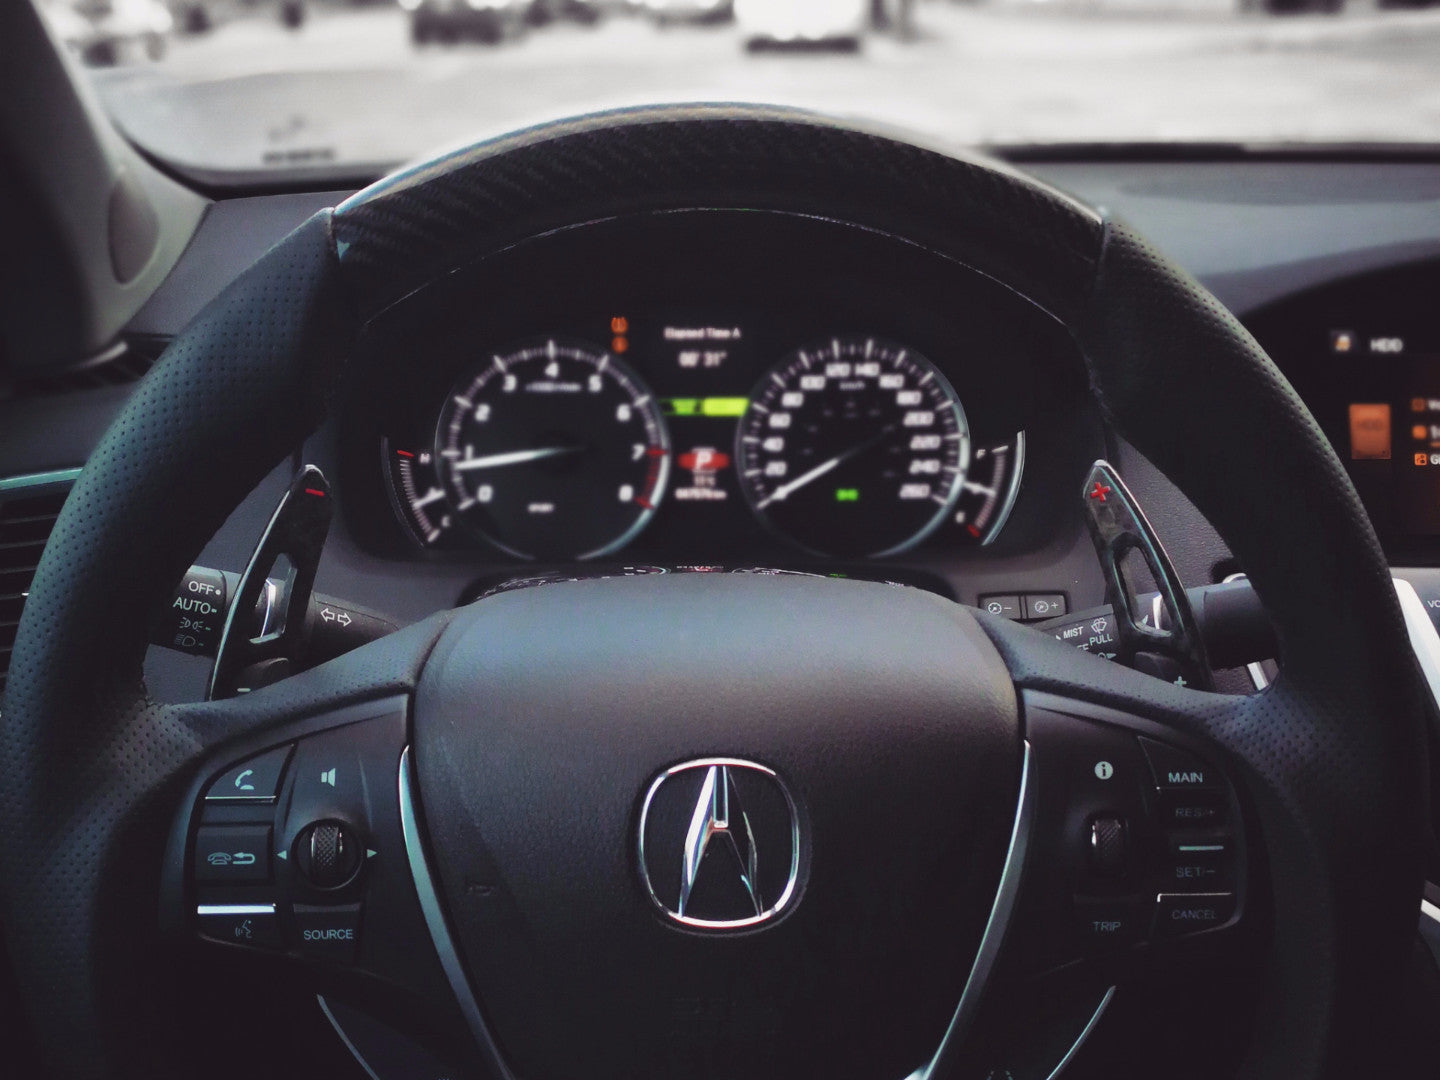 BESPOKE TLX STEERING WHEEL - Interior Accessories - Yomato Carbon - Montreal Canada